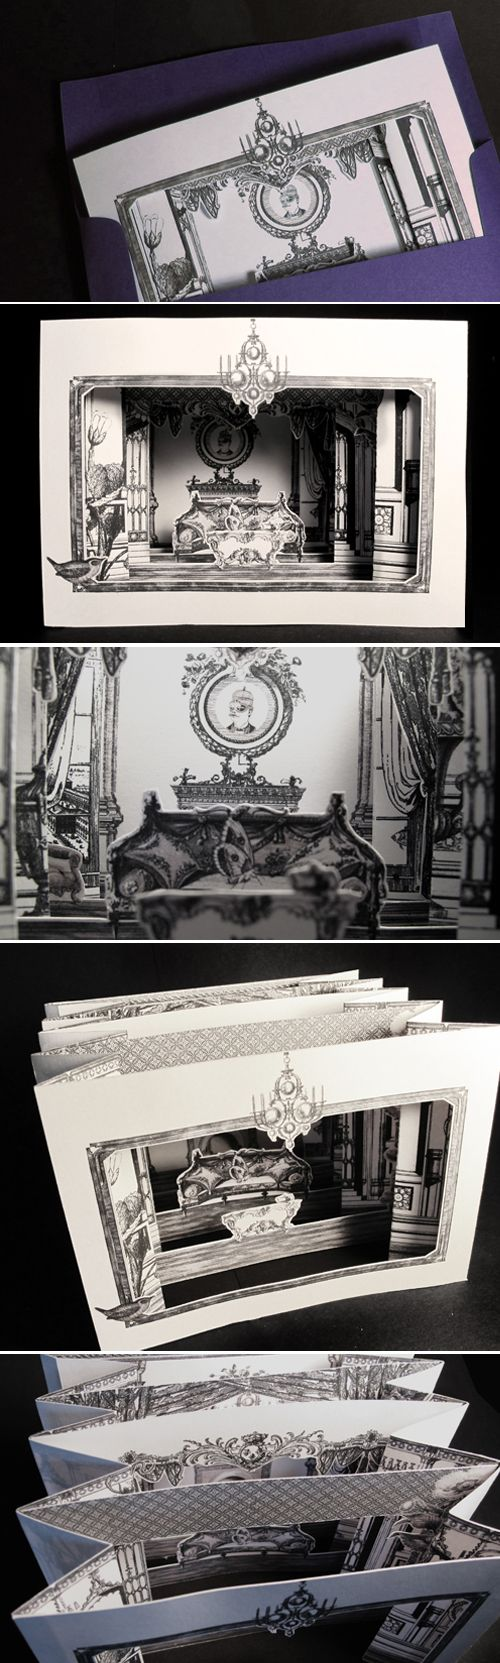 Brilliant! http://www.epiclayers.com/upholstery.html (Cool Art Cut Paper)